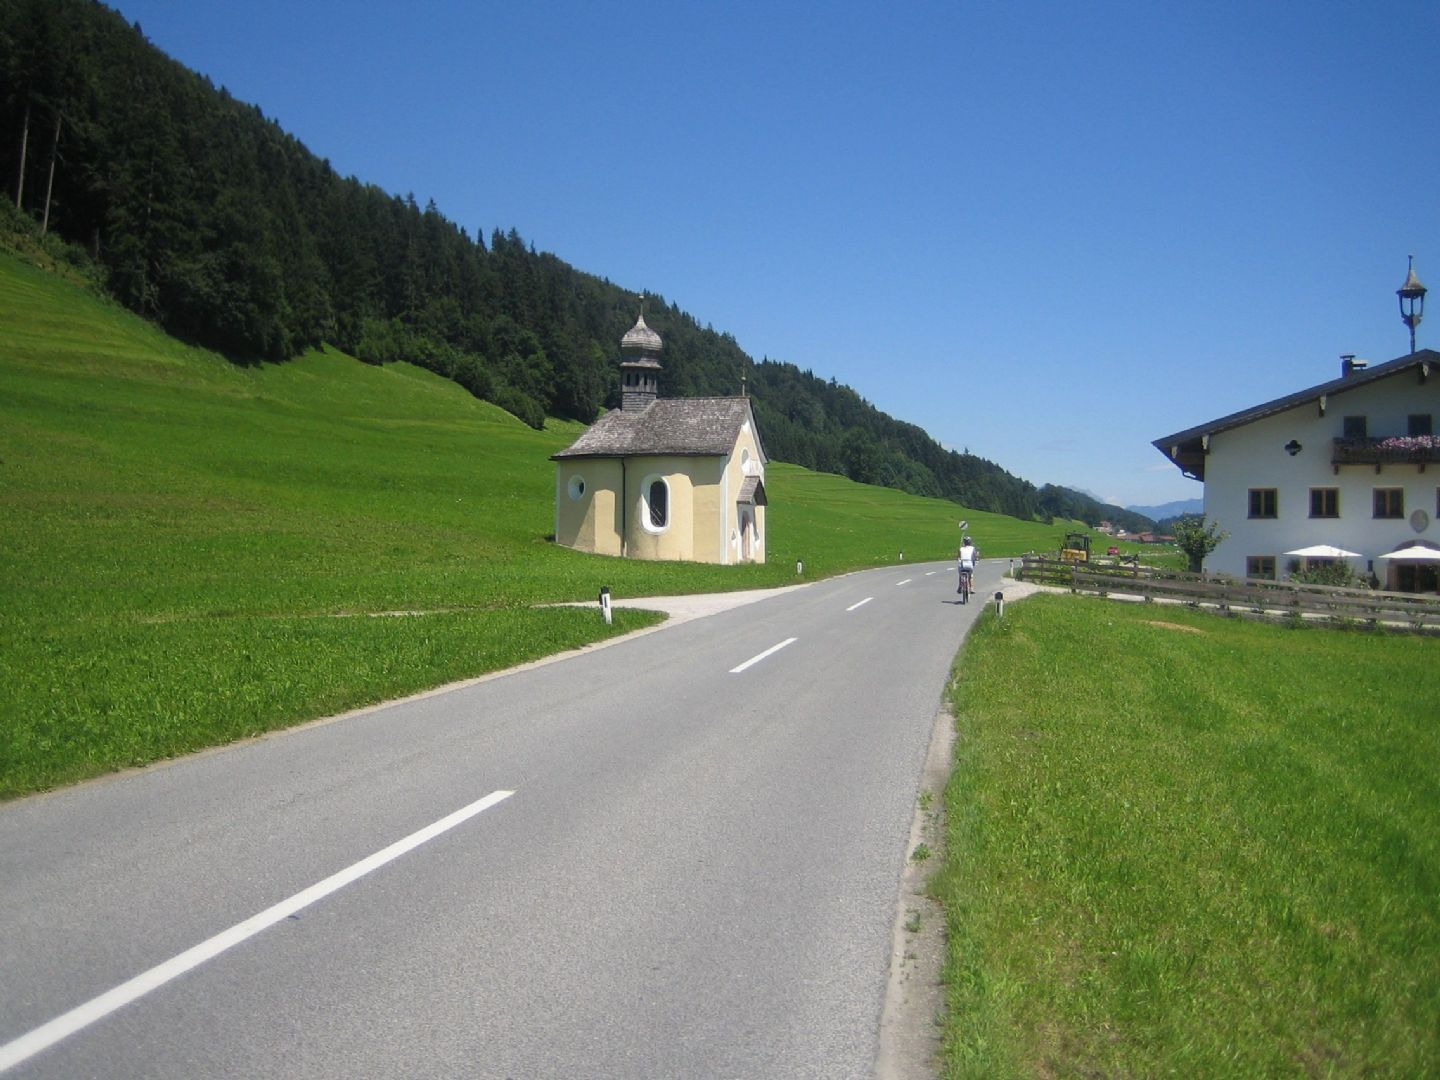 tyr 1.jpg - Austria - Tyrolean Valleys - Self-Guided Leisure Cycling Holiday - Leisure Cycling